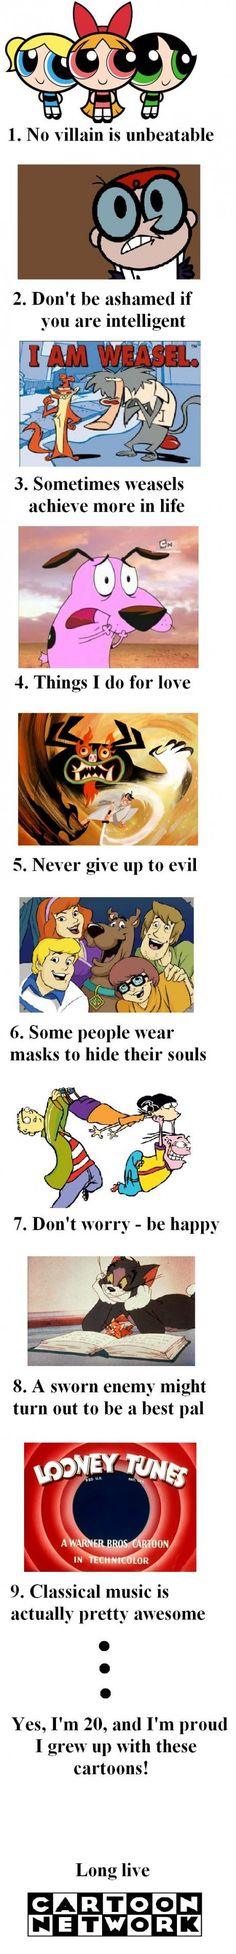 Cartoon Network. was it just me or did you think the scooby one was deep.